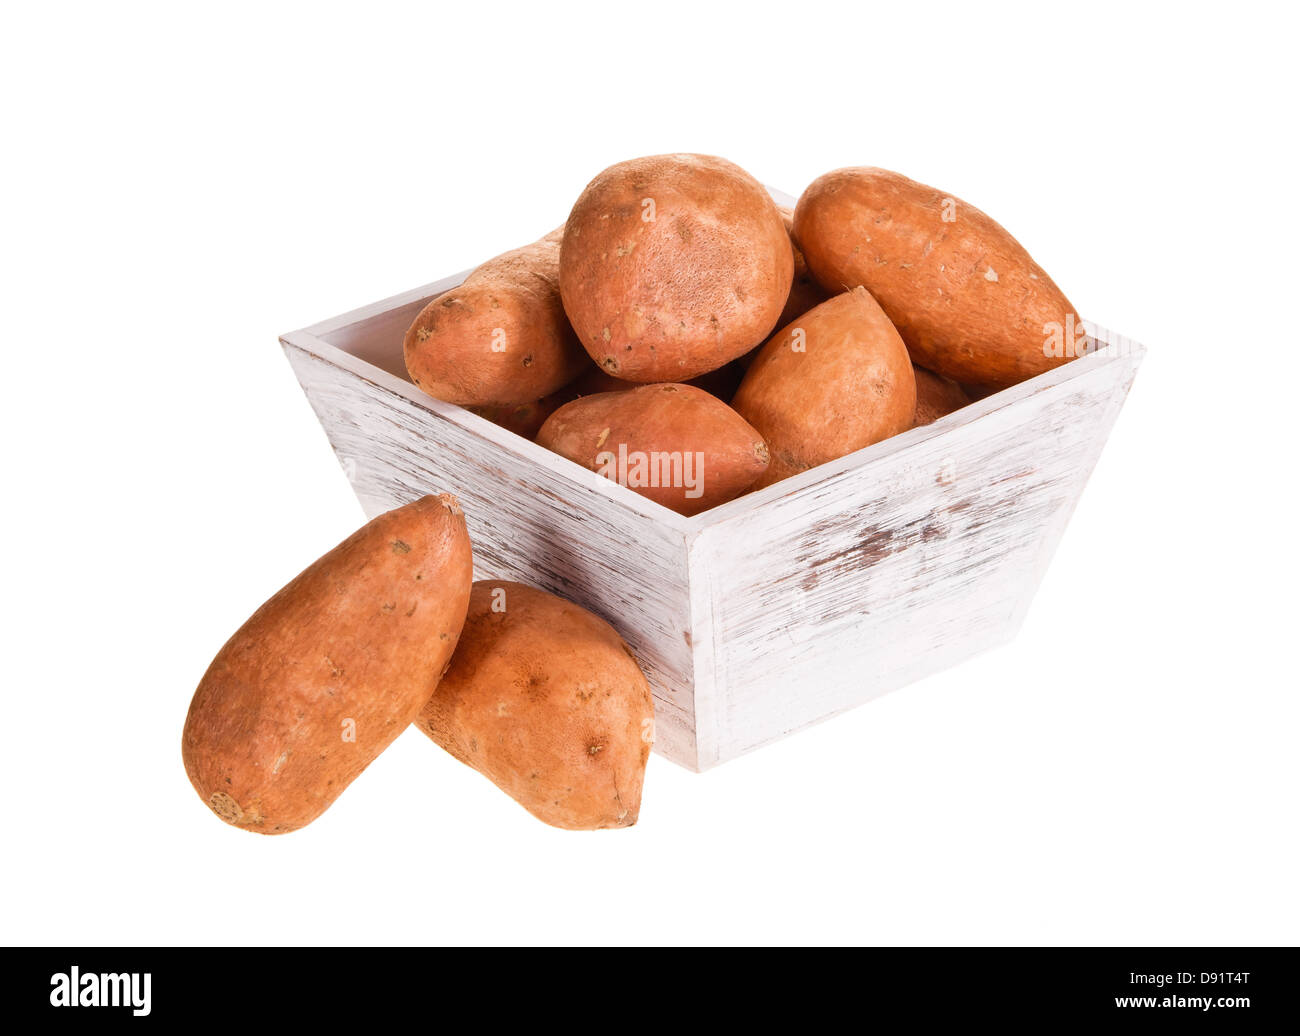 Sweet potatoes, rich in vitamins and minerals, in white wooden container isolated over white - Stock Image